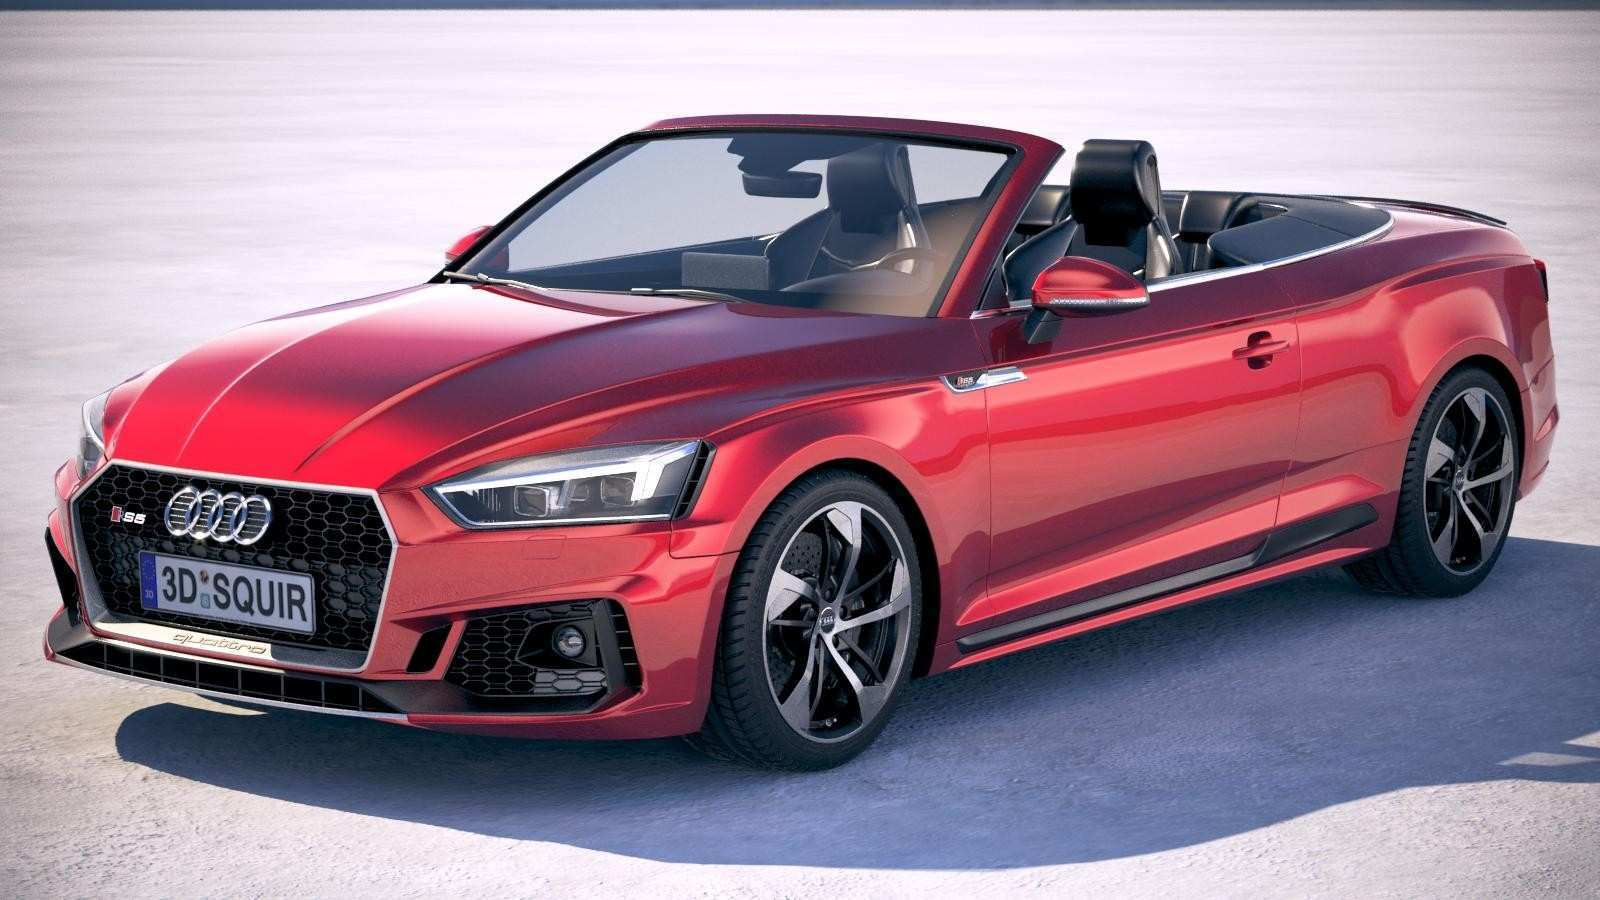 87 New 2019 Audi S5 Cabriolet Overview